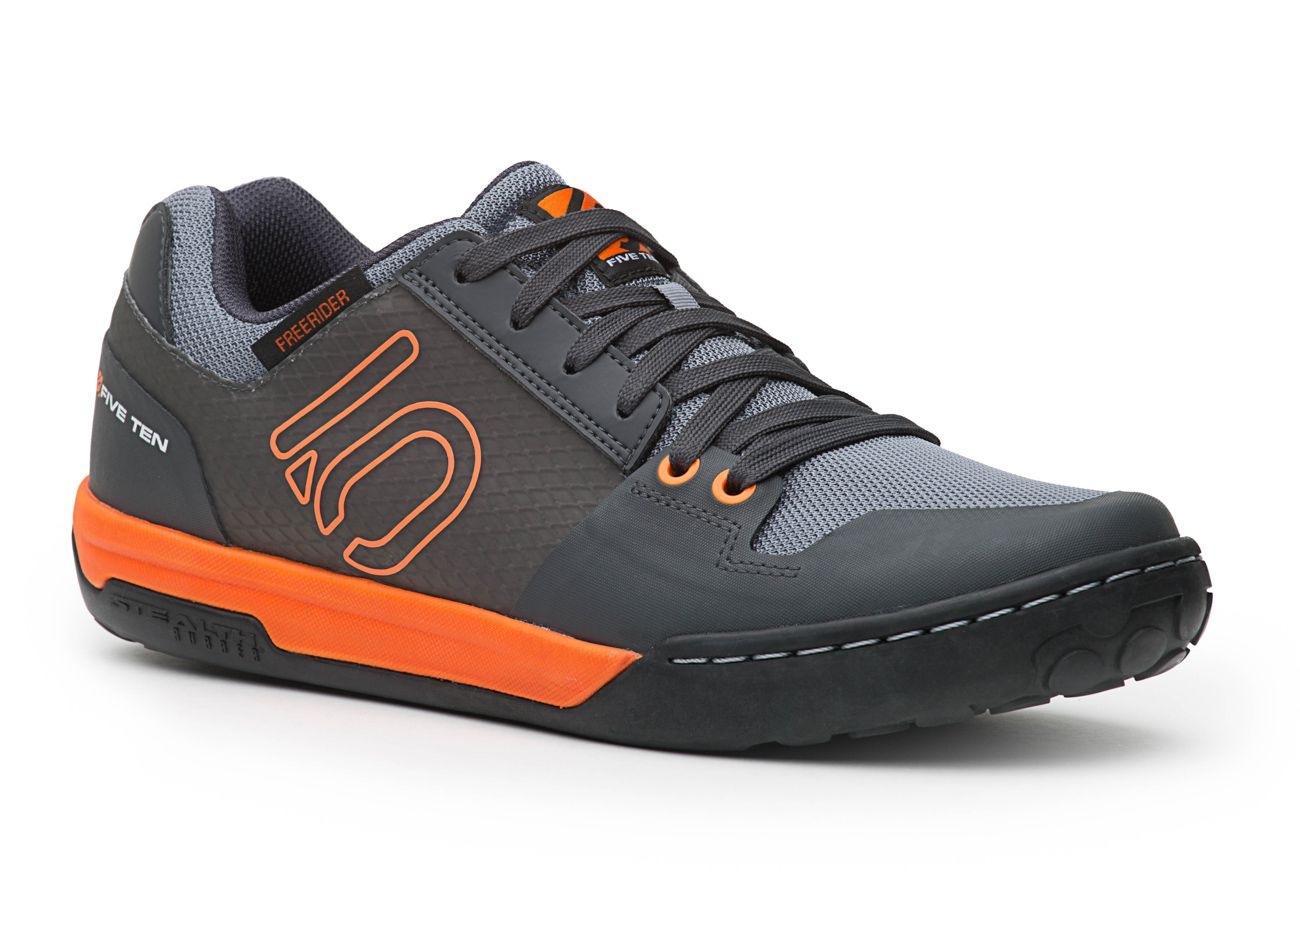 Five Ten Freerider Contact Cycling Shoes